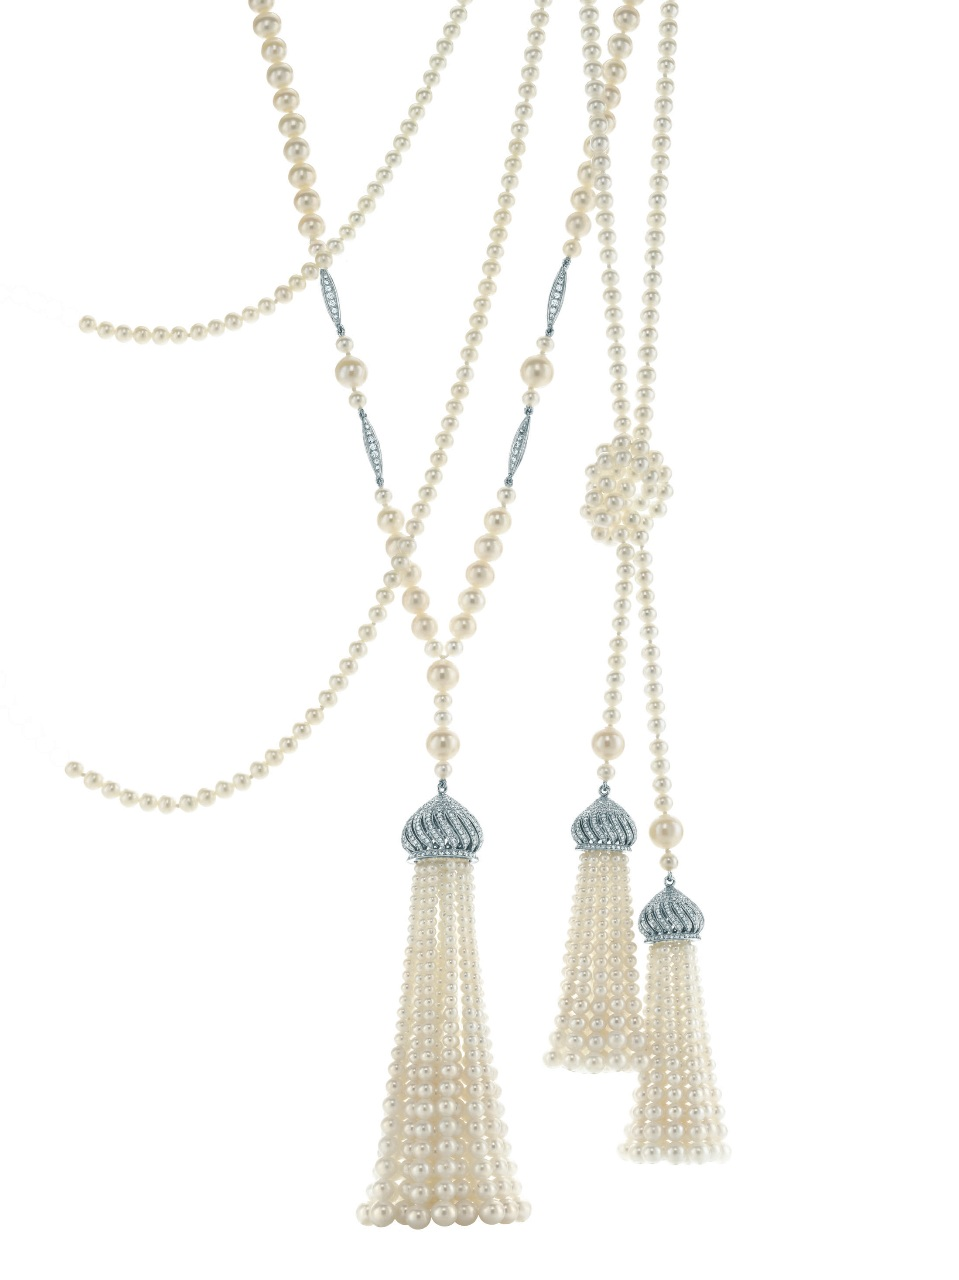 959f6b9e2 The Great Gatsby Collection from Tiffany & Co - Chic Vintage Brides ...